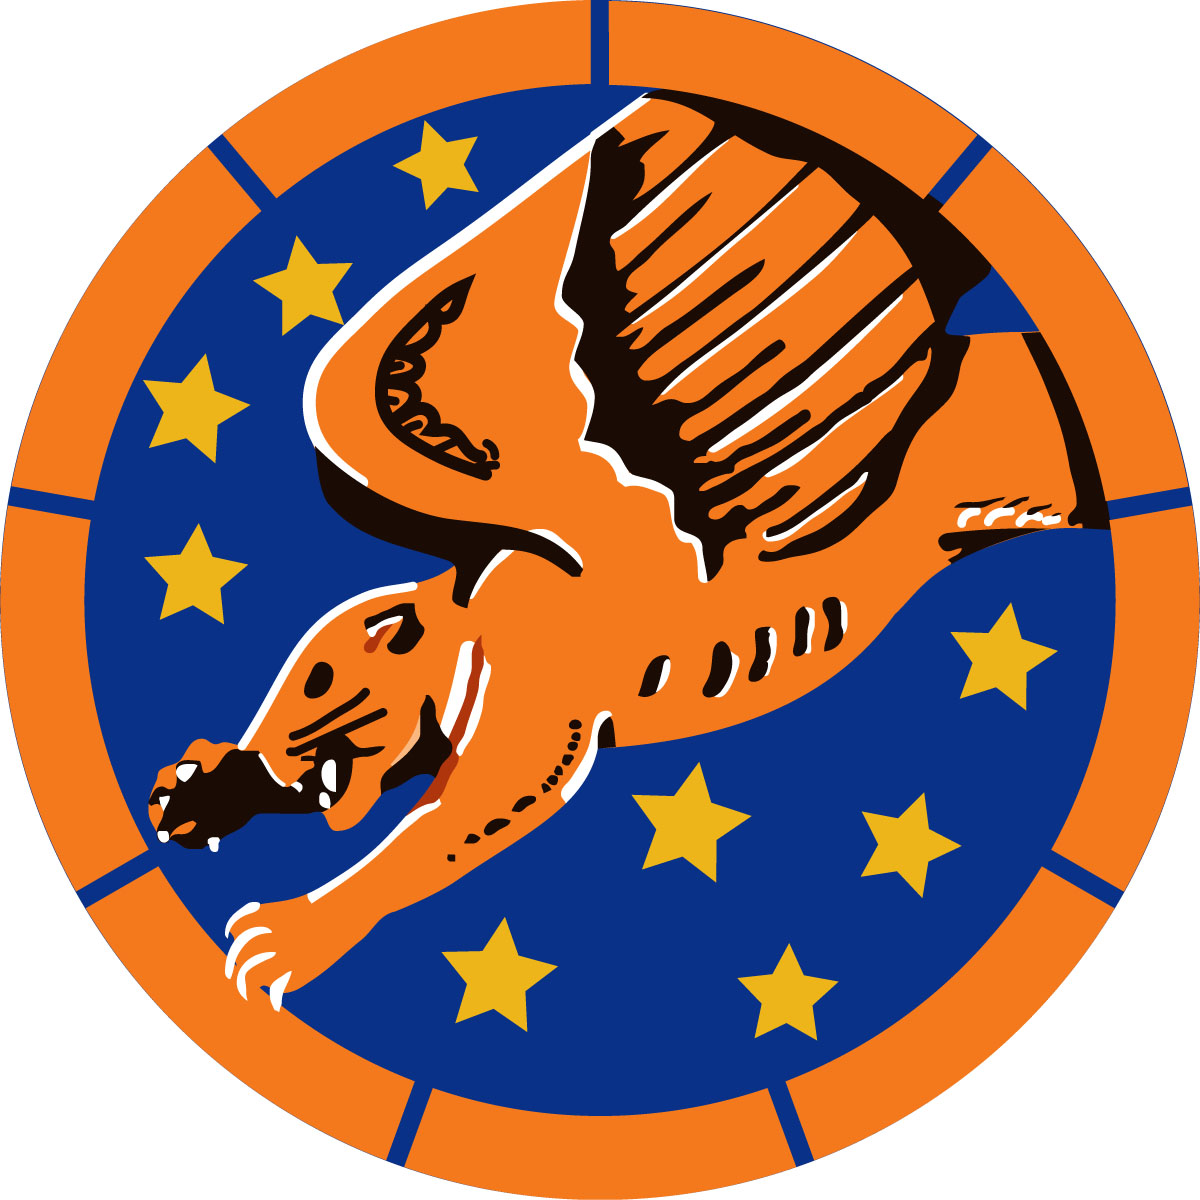 99th_Fighter_Squadron_patch.jpg